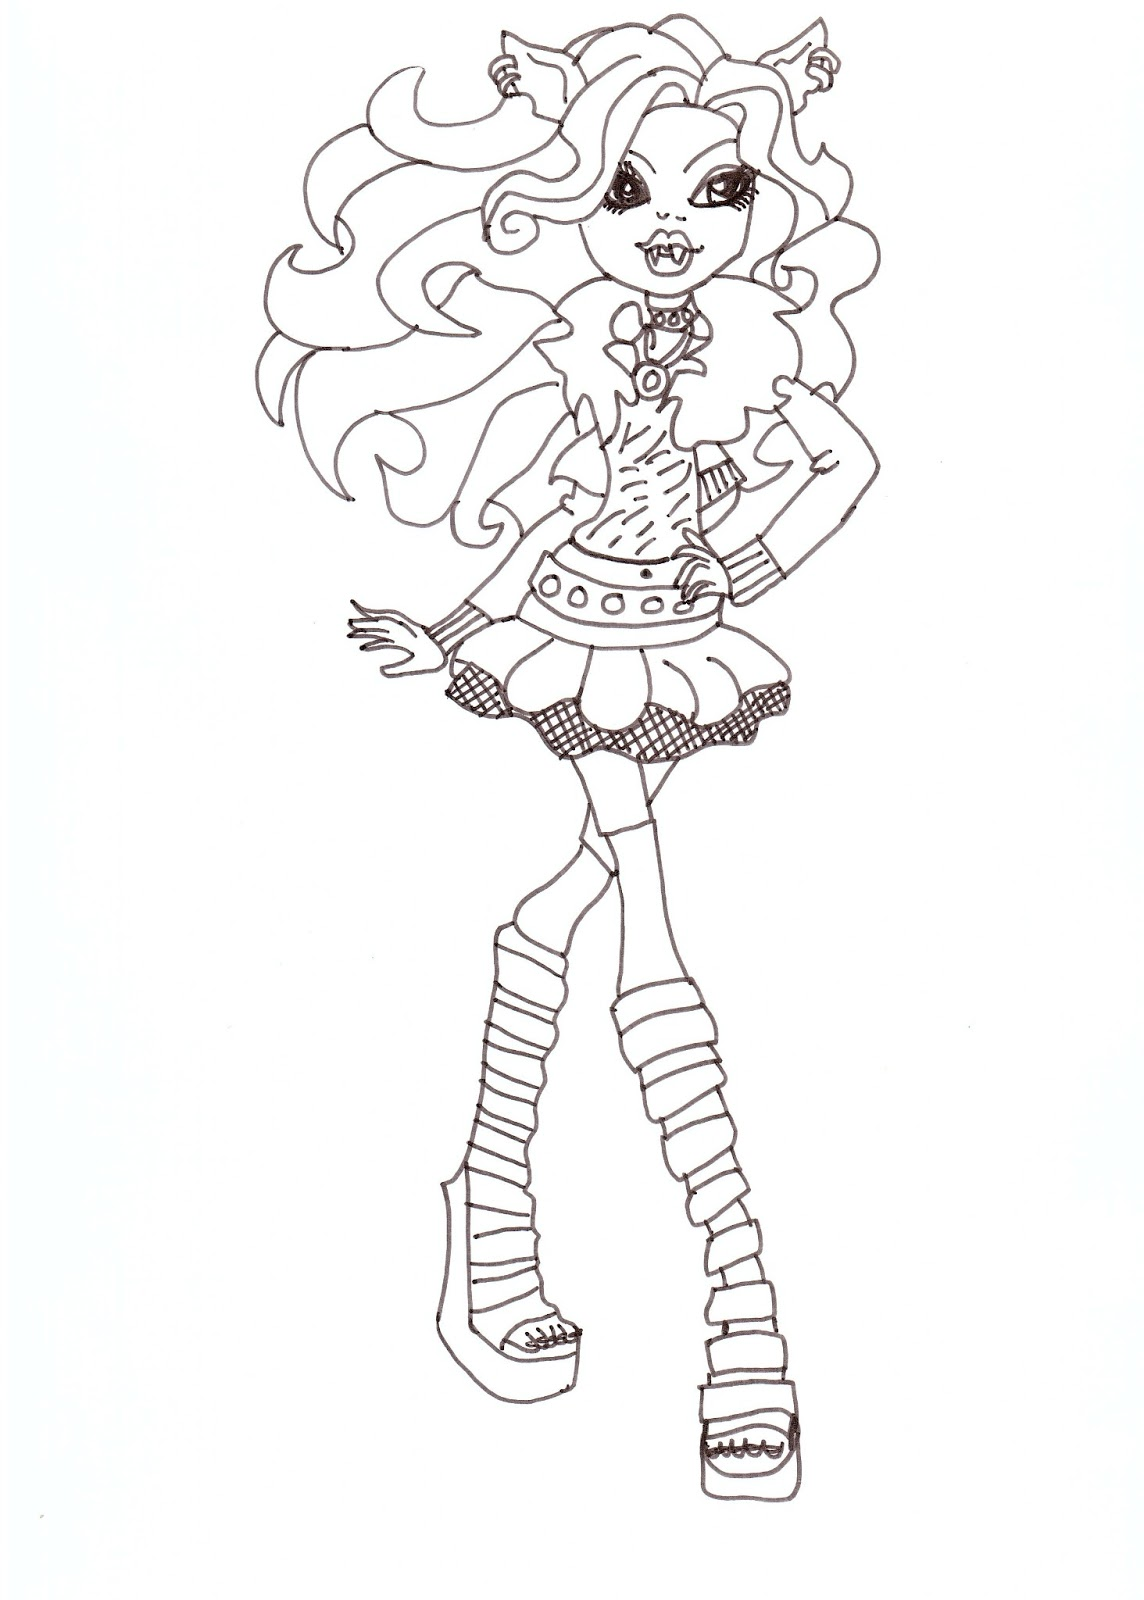 Free Printable Monster High Coloring Pages: Clawdeen Wolf